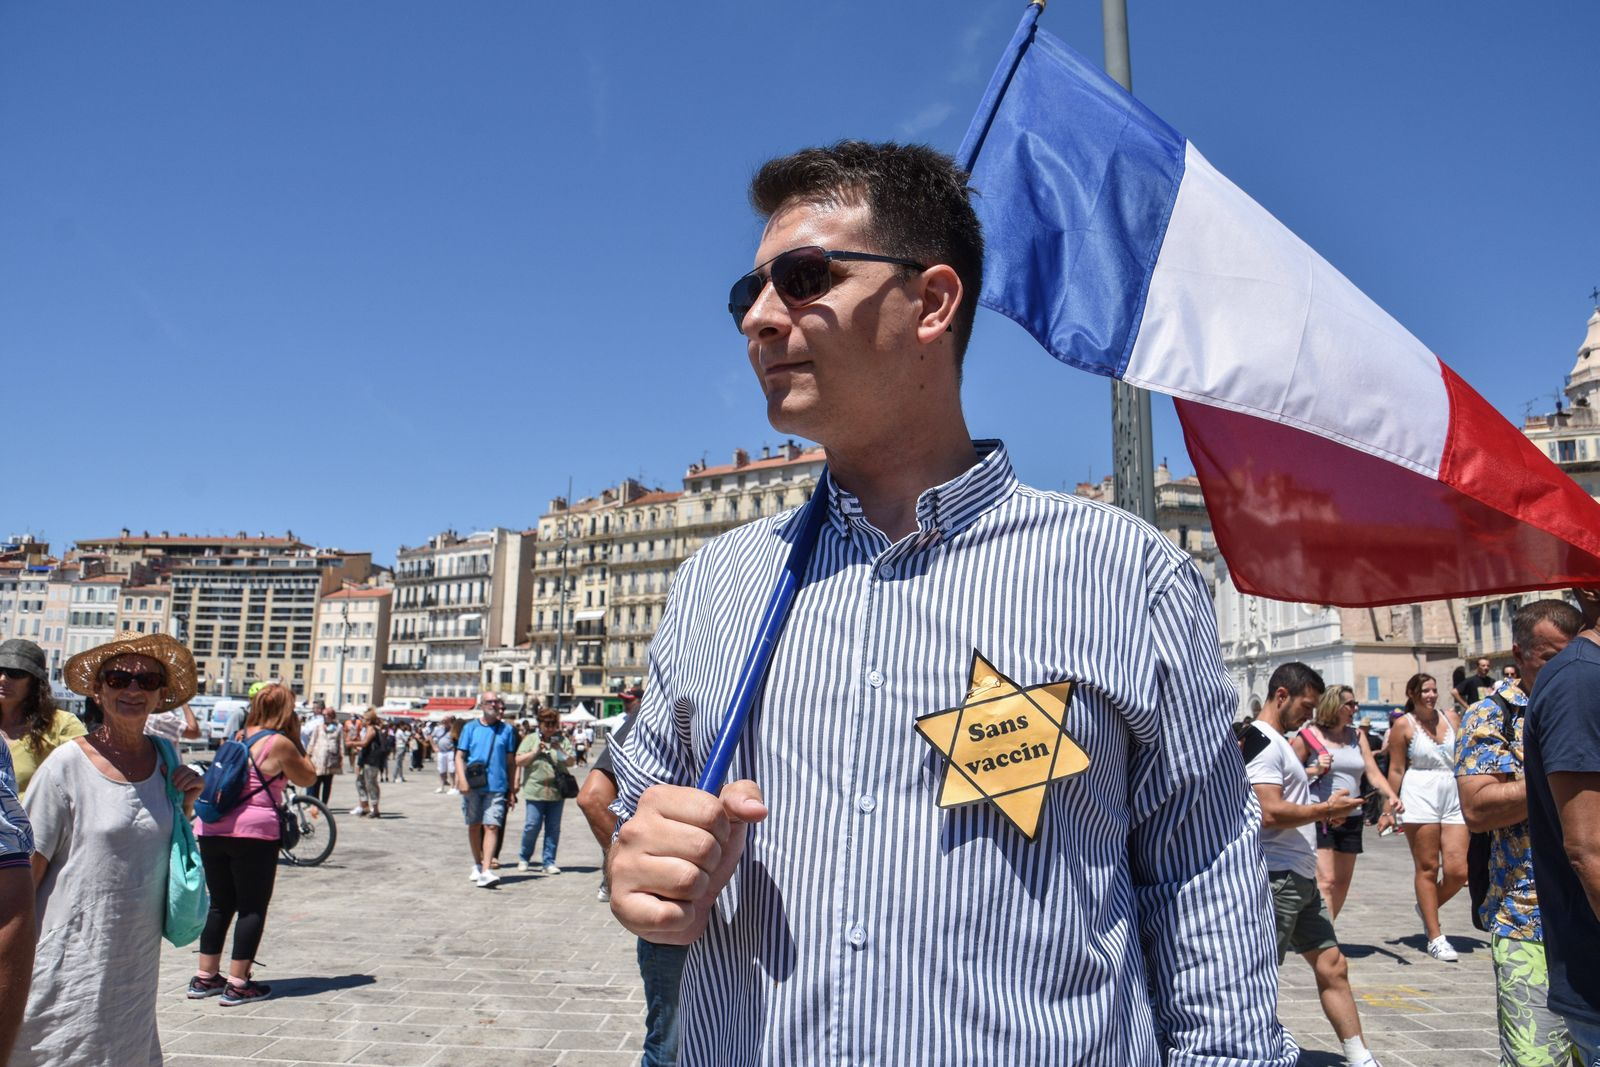 July 17, 2021, Marseille, France: Protester holds a French flag and flaunts a Jewish yellow star on his chest during th